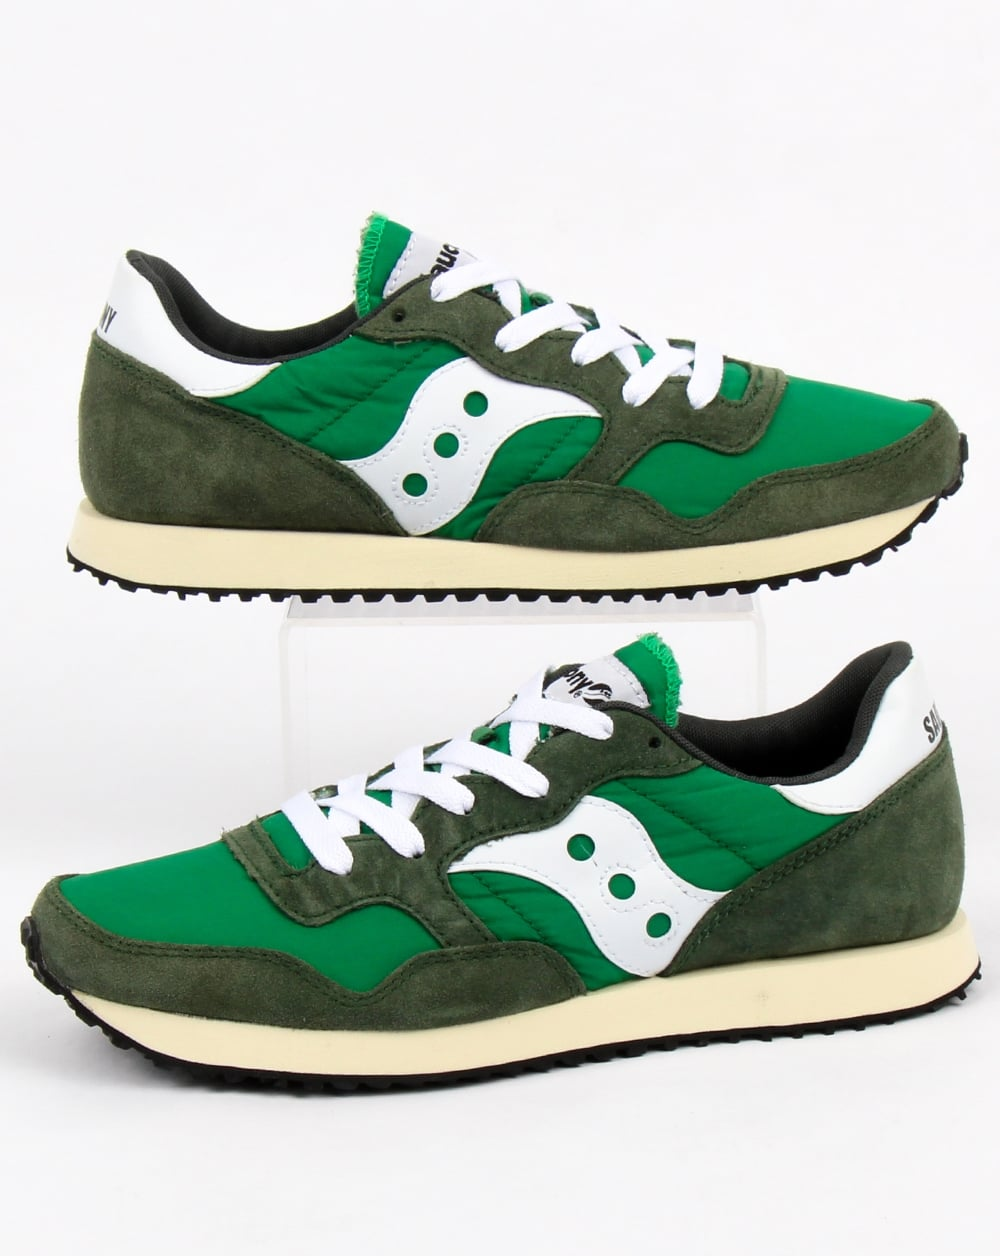 24ef0d7dbe2 Saucony DXN Vintage Trainers Green/White,shoes,sneakers,runners,mens